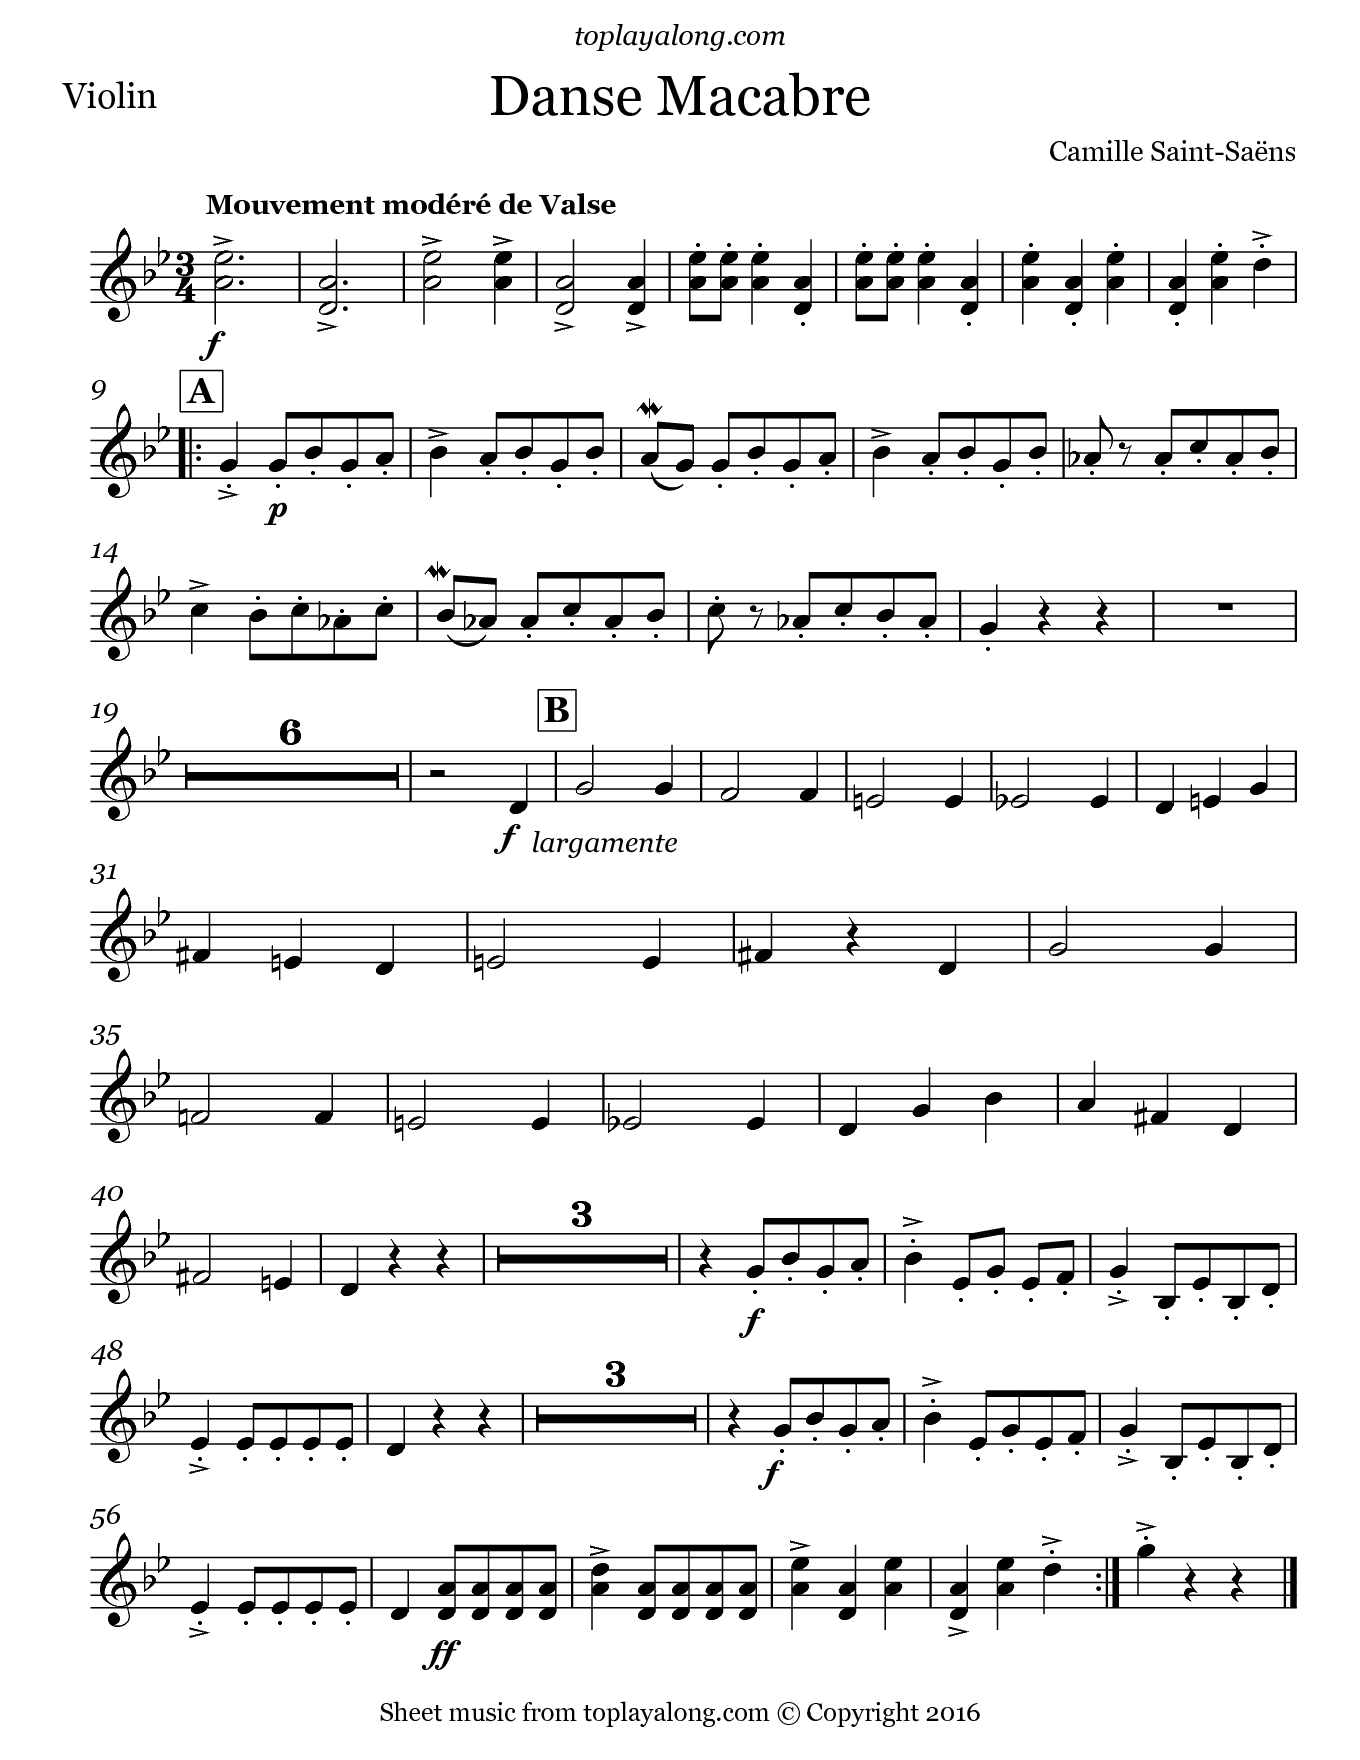 Danse Macabre by Saint-Saëns  Free sheet music for violin